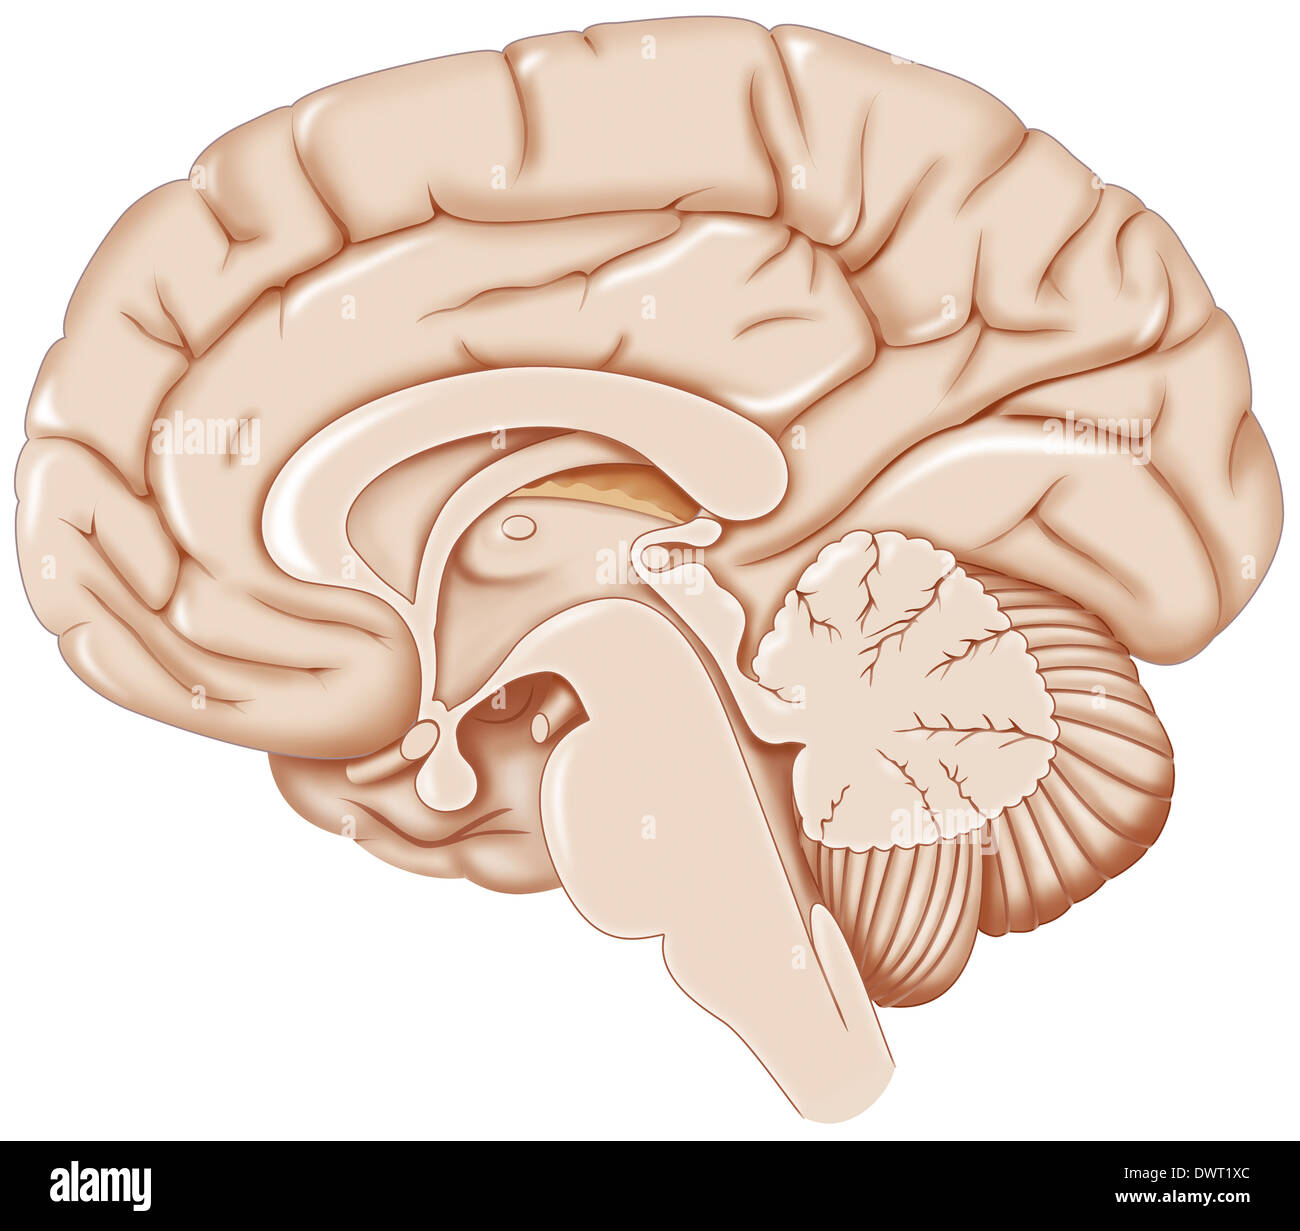 Pineal Gland Drawing Stock Photos & Pineal Gland Drawing Stock ...